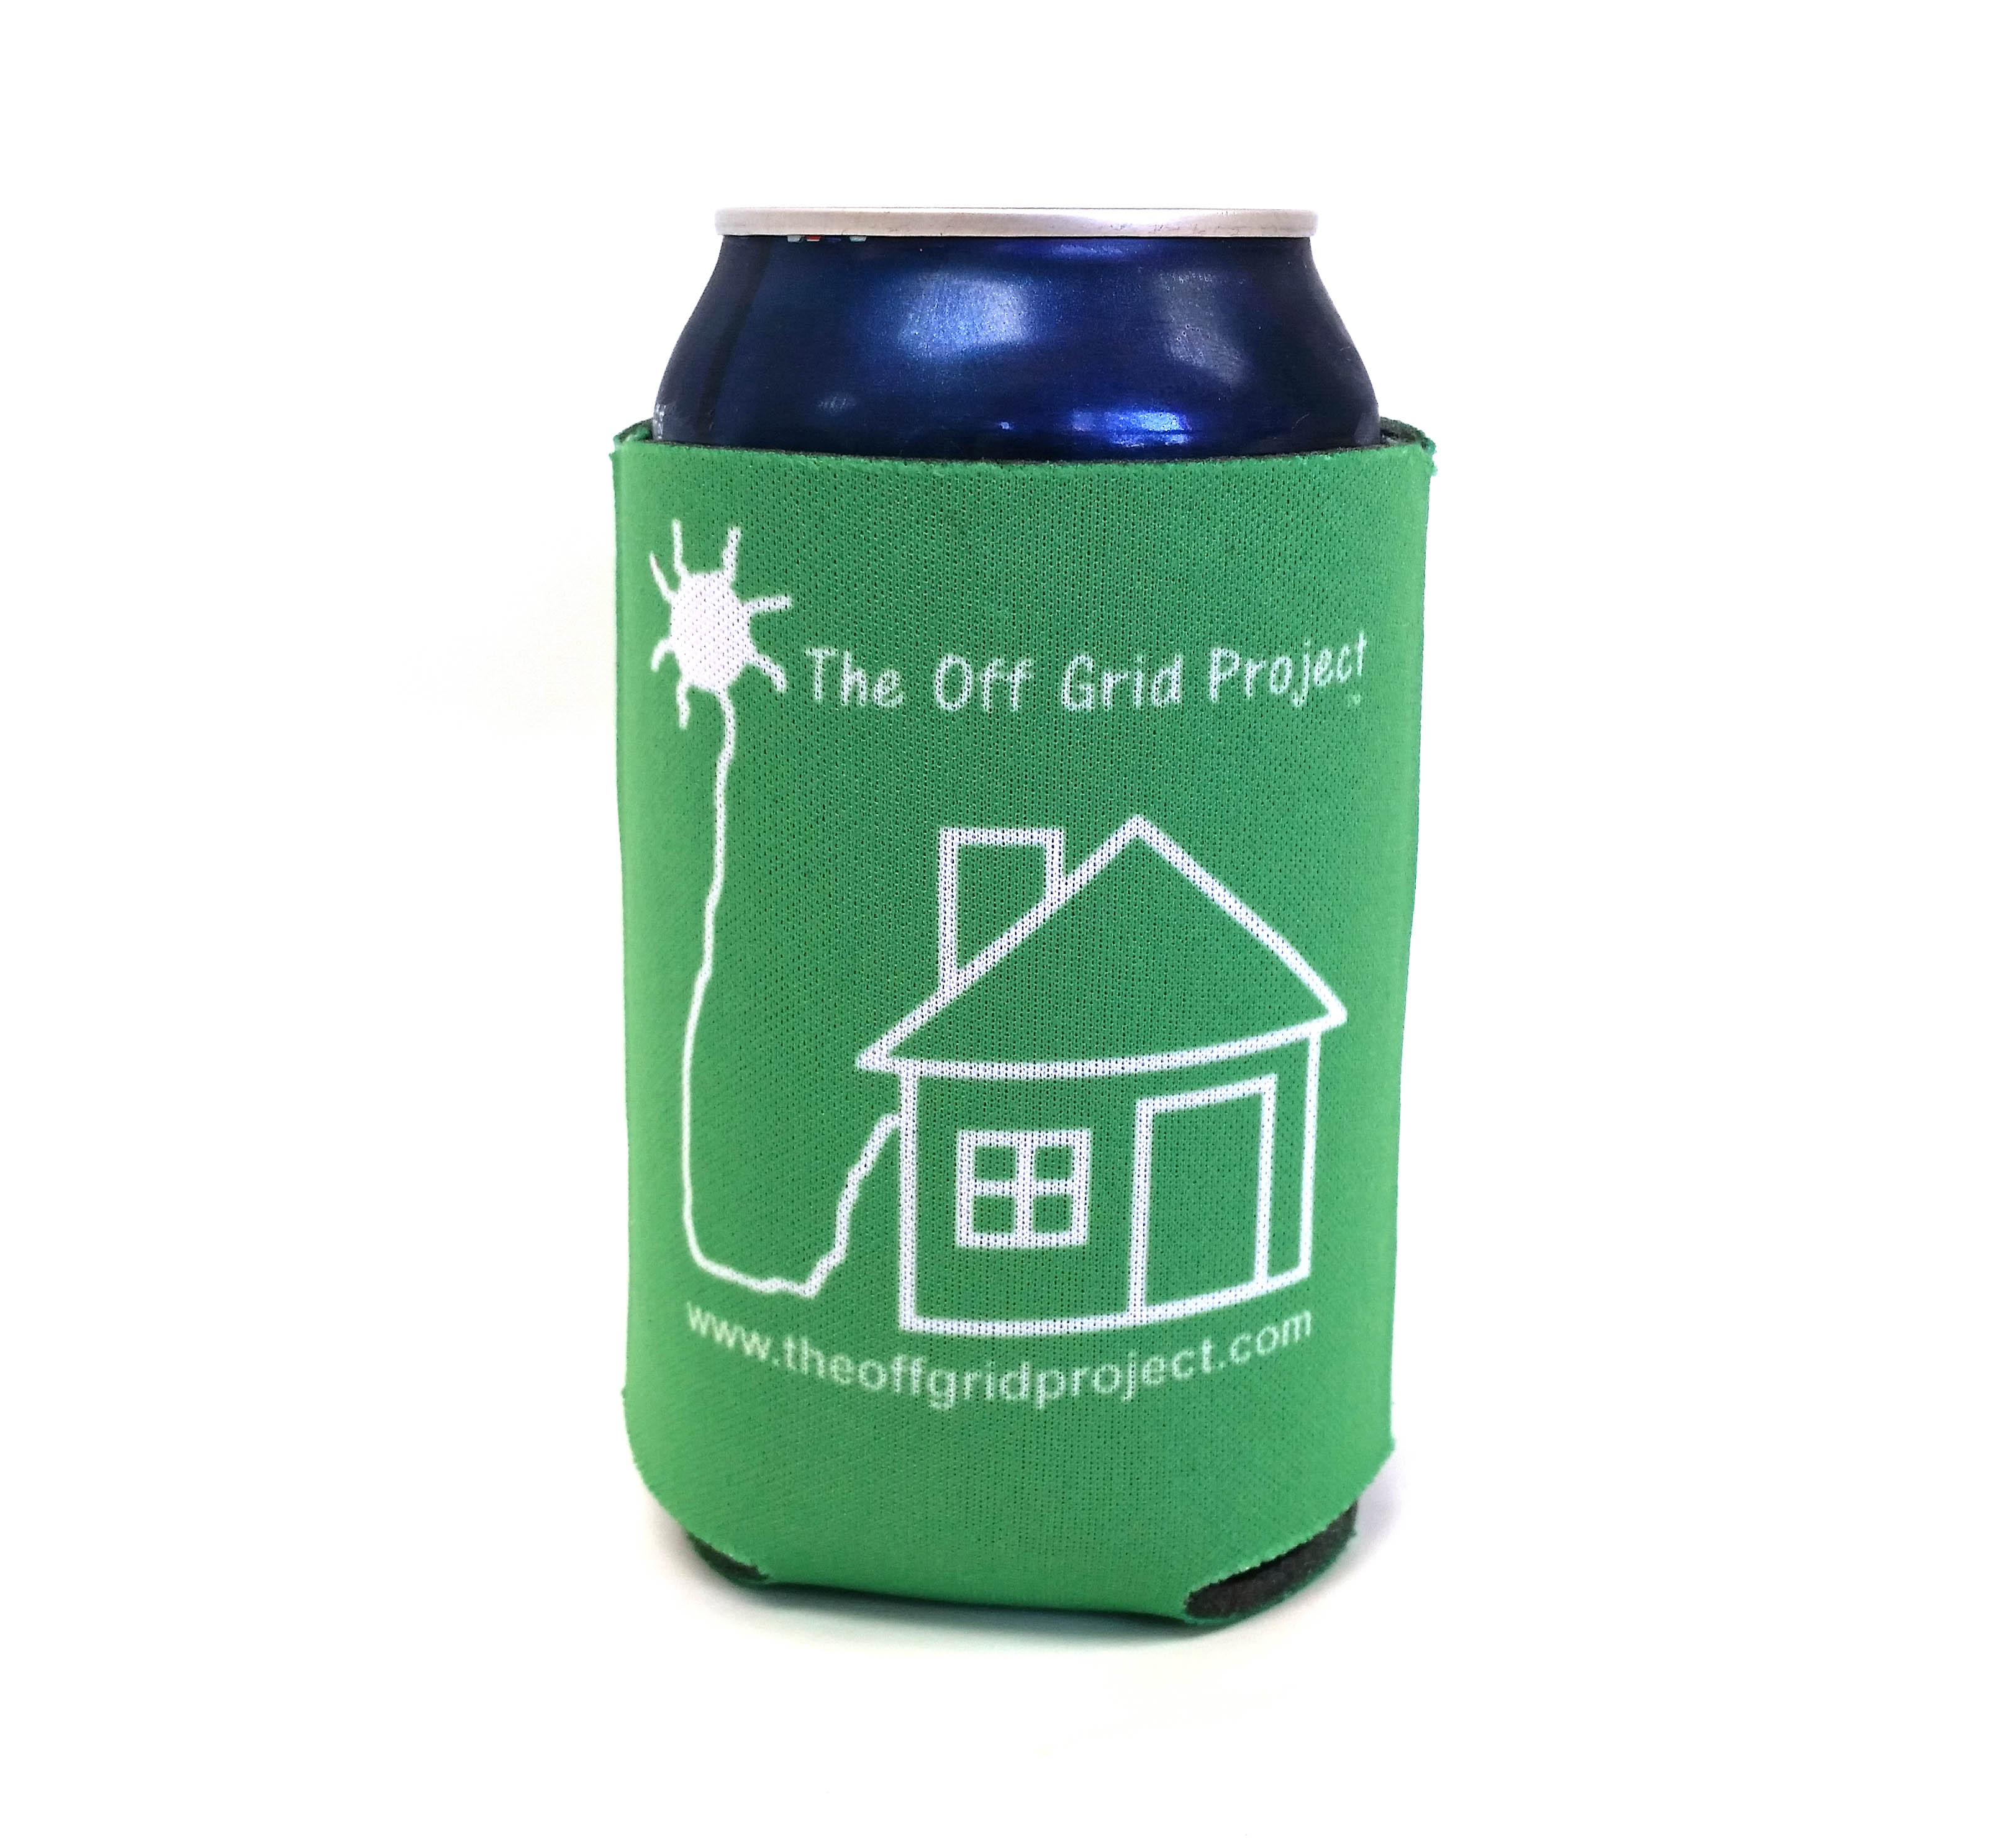 The do it yourself world merchandise off grid project cup cozy green click for larger image solutioingenieria Image collections